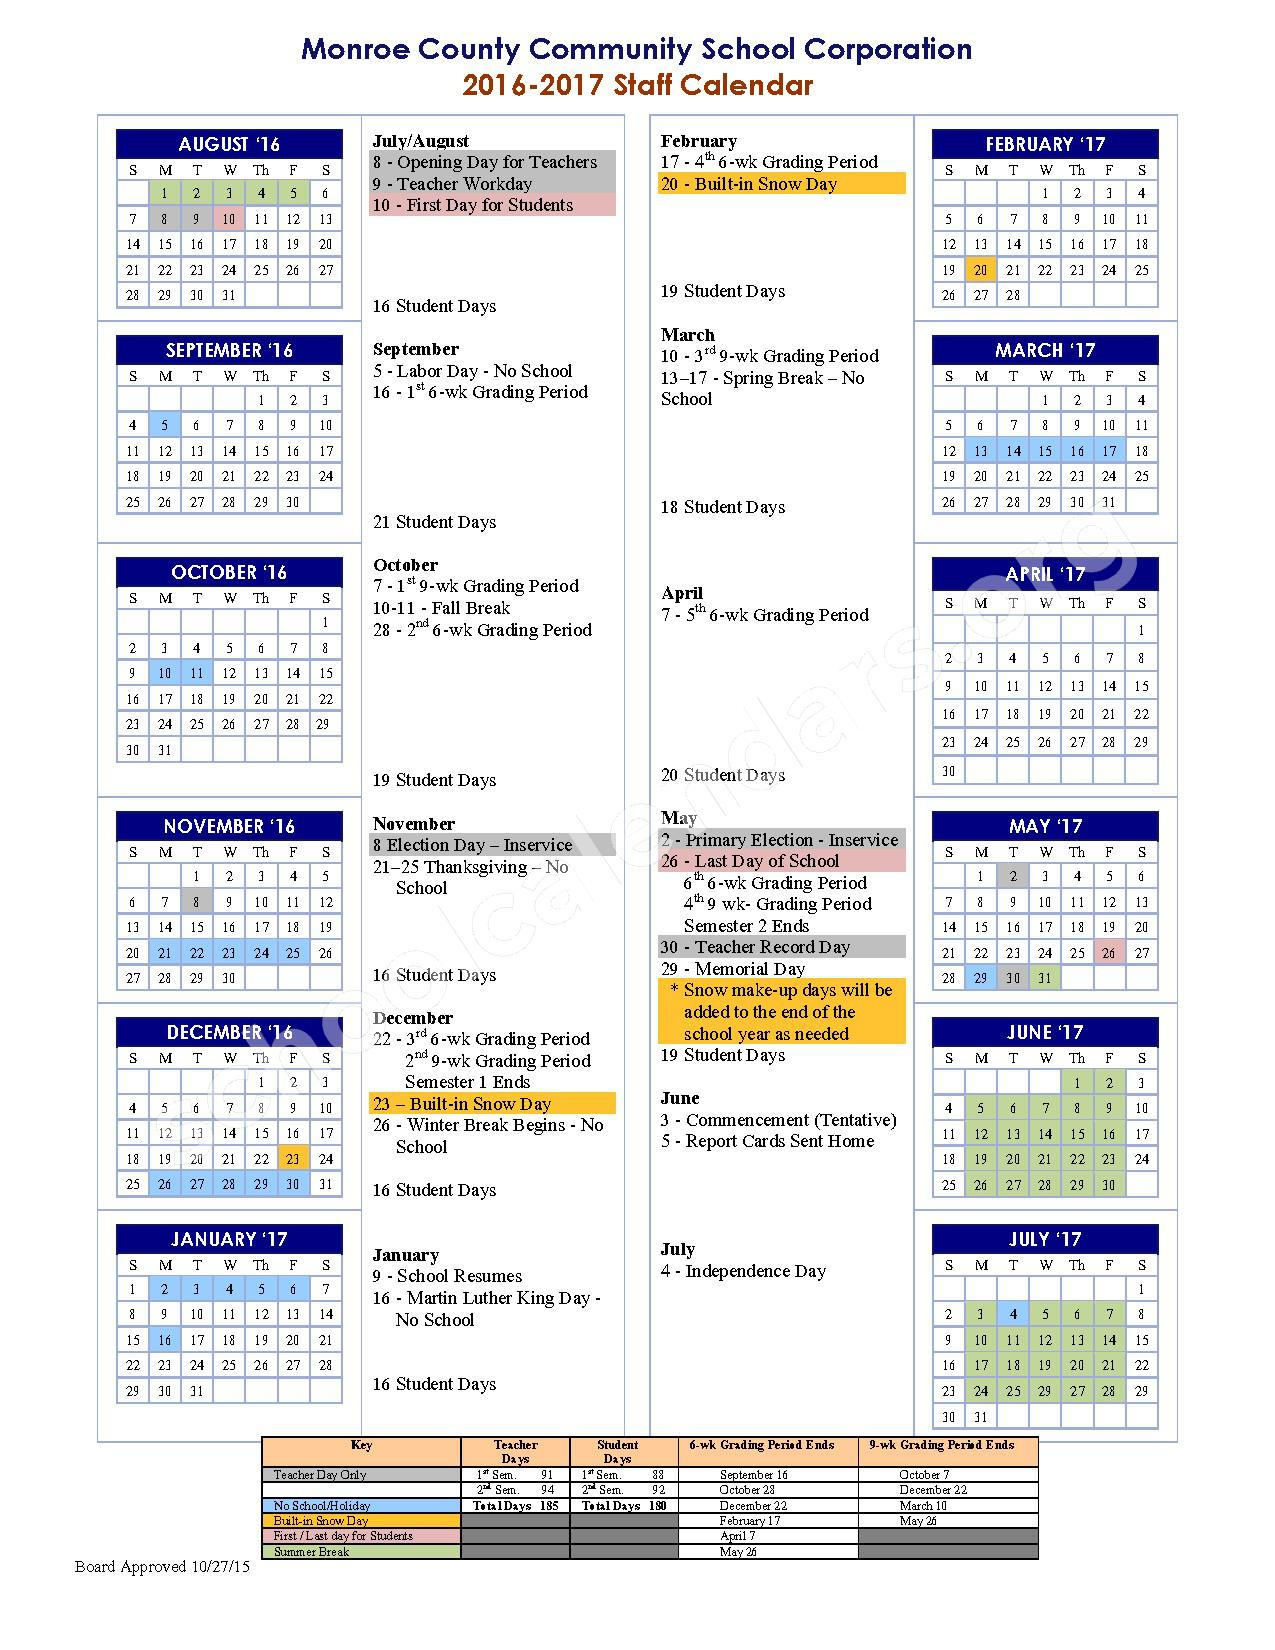 2016 - 2017 School Calendar – Monroe County Community School Corporation – page 1